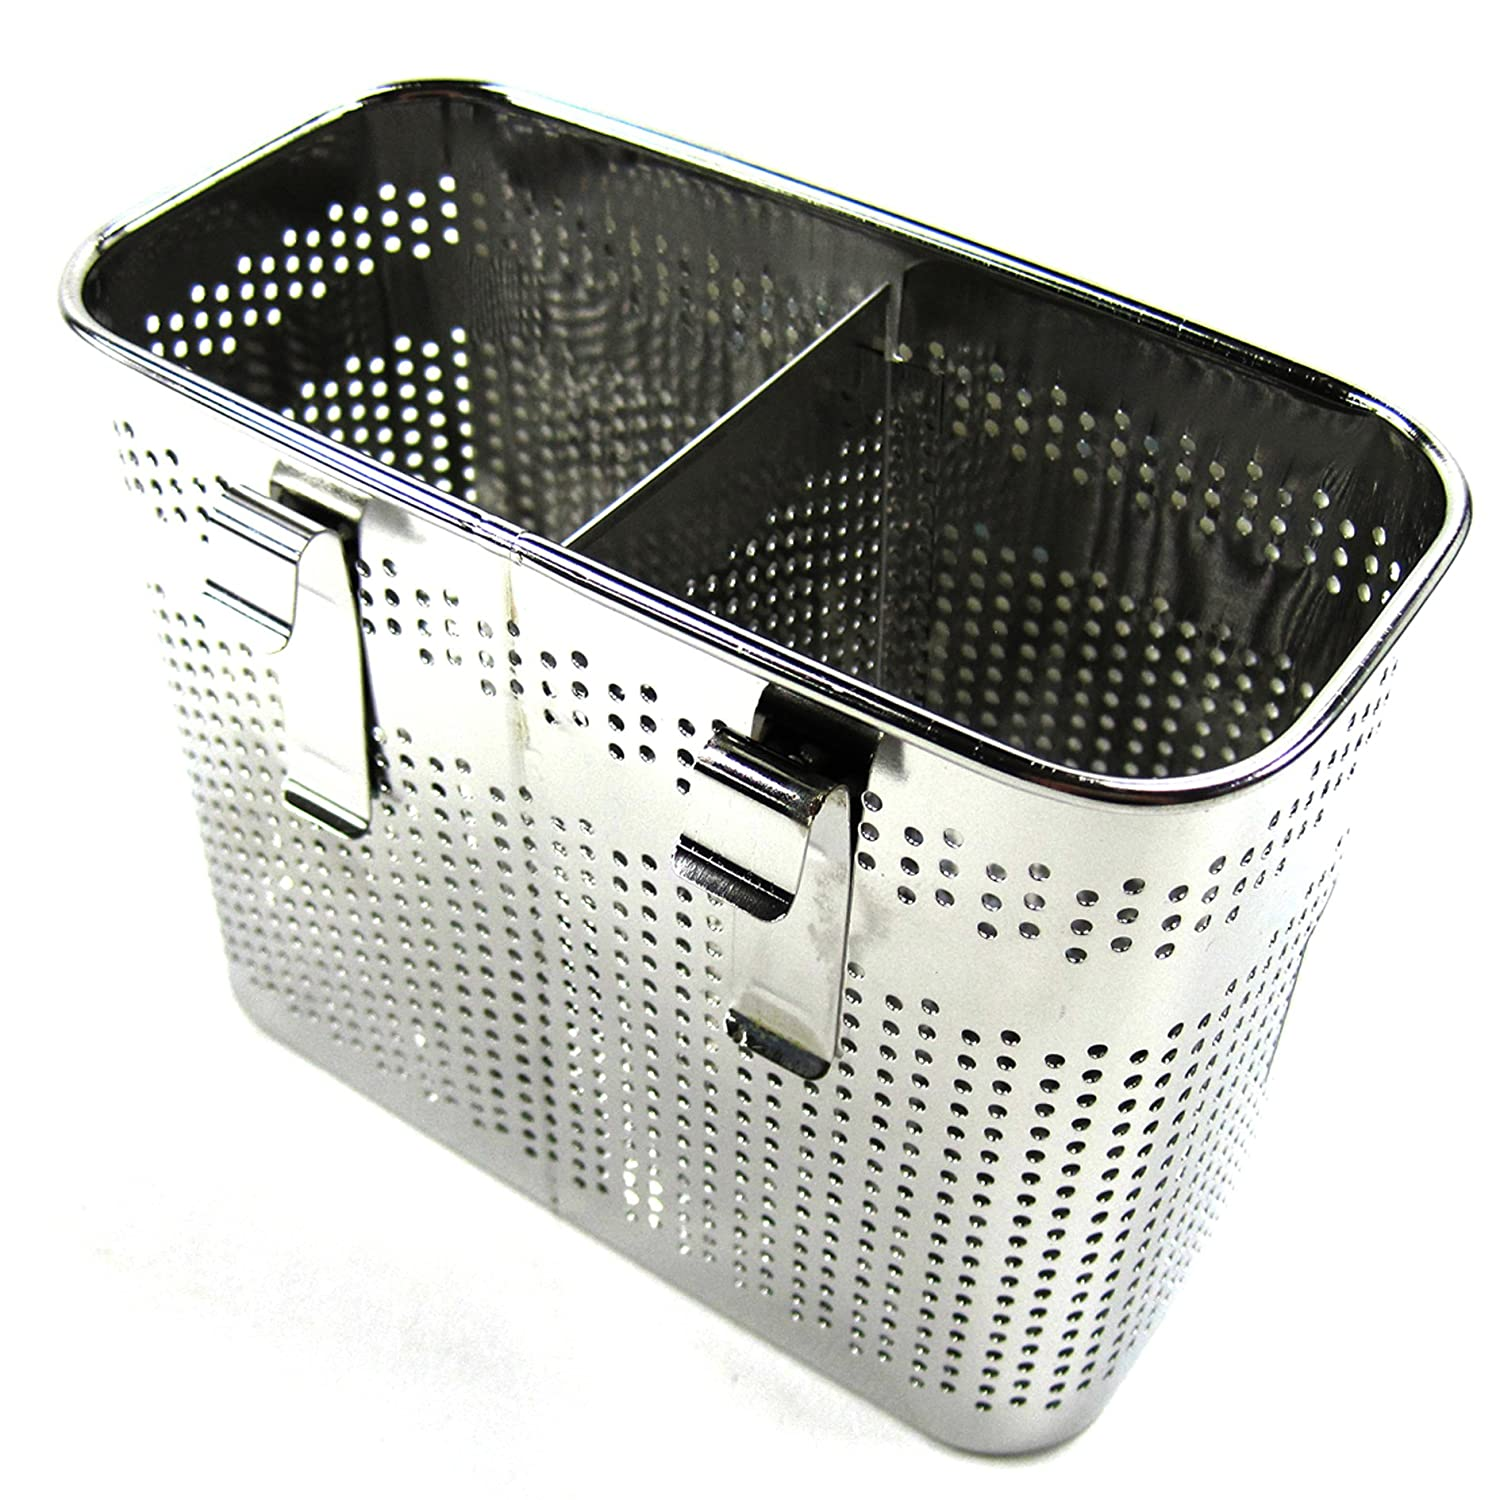 2 Divided Square Stainless Steel Perforated Cutlery Holder Sink Storage Basket by Stopia